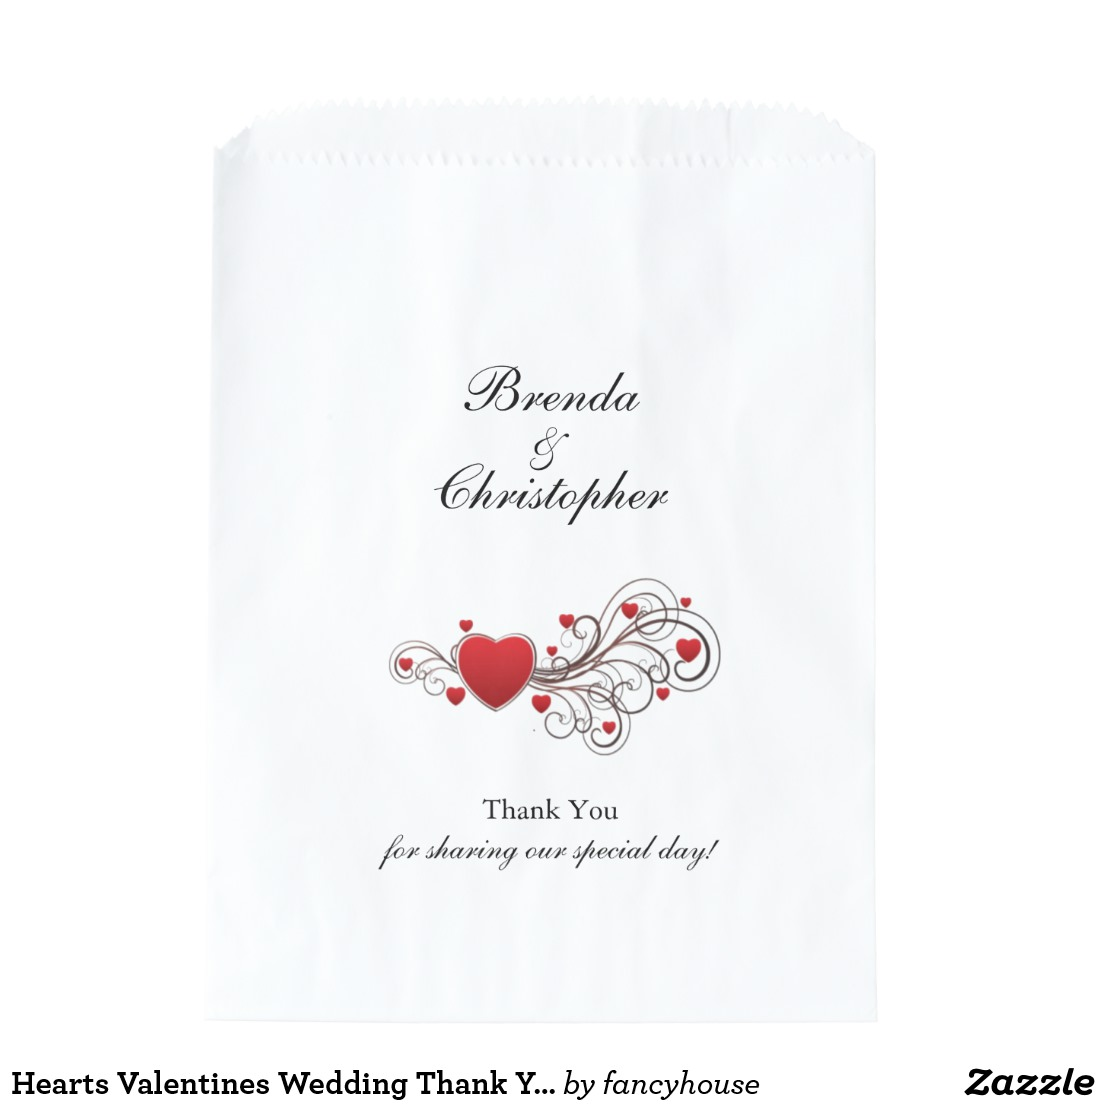 Hearts Valentines Wedding Thank You Favor Bags